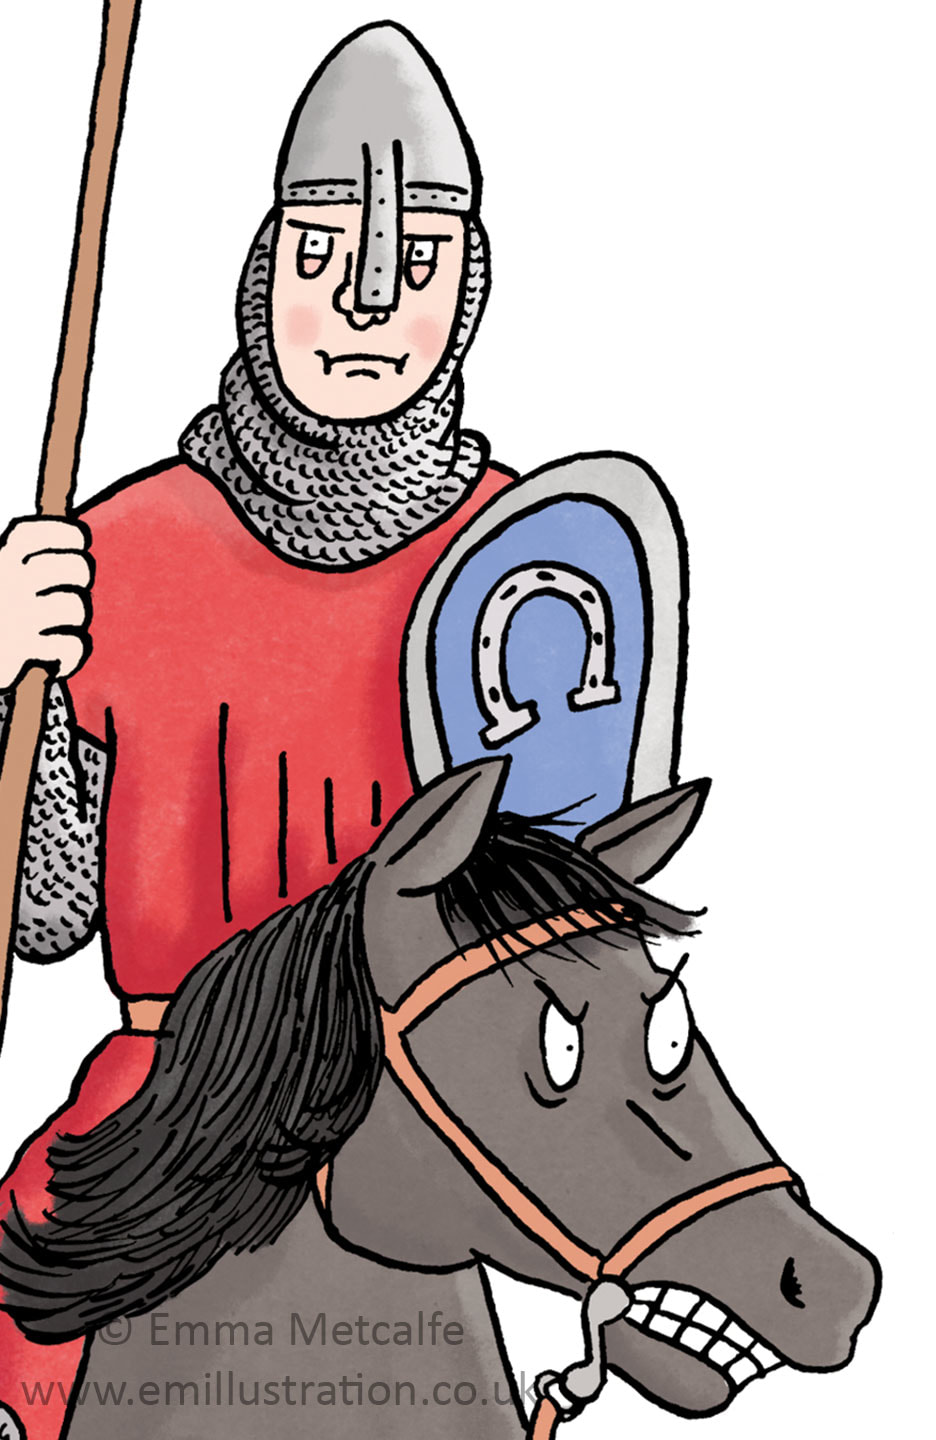 Children's historical illustration of Norman knight by illustrator Emma Metcalfe